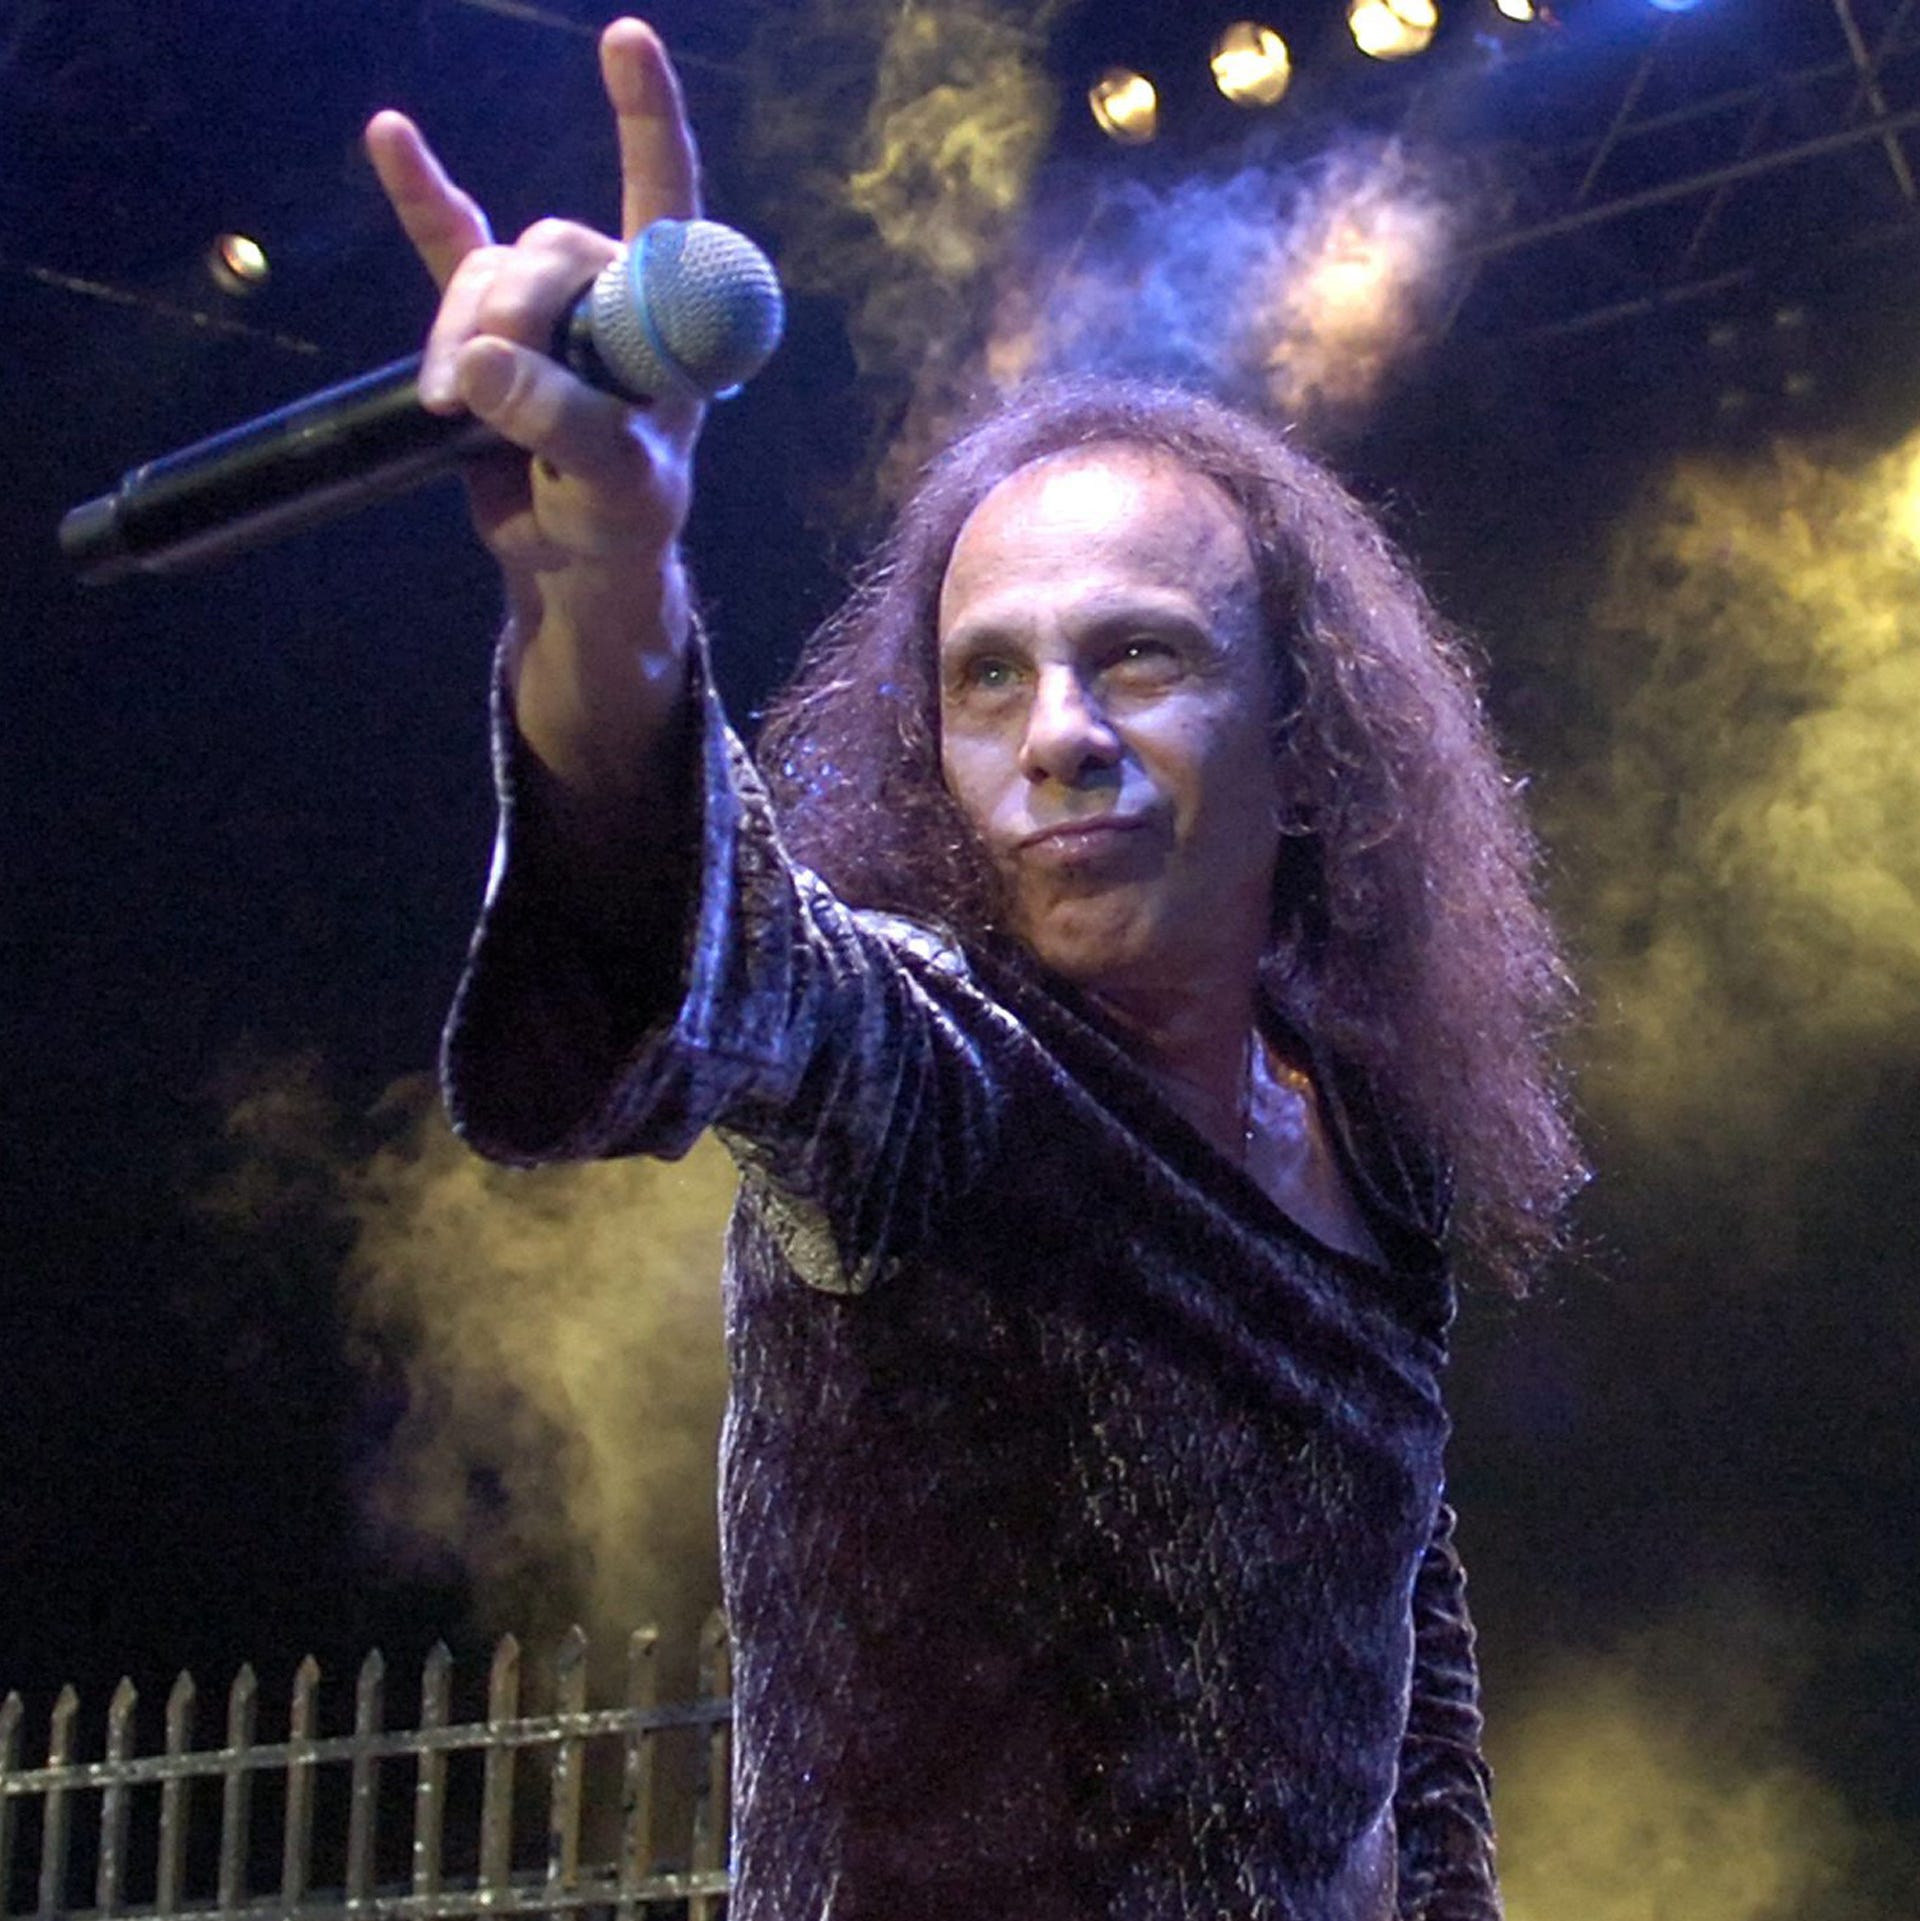 Dio hologram will rock Fort Myers' Mann Hall. 'It's a real metal show,' says hologram creator.